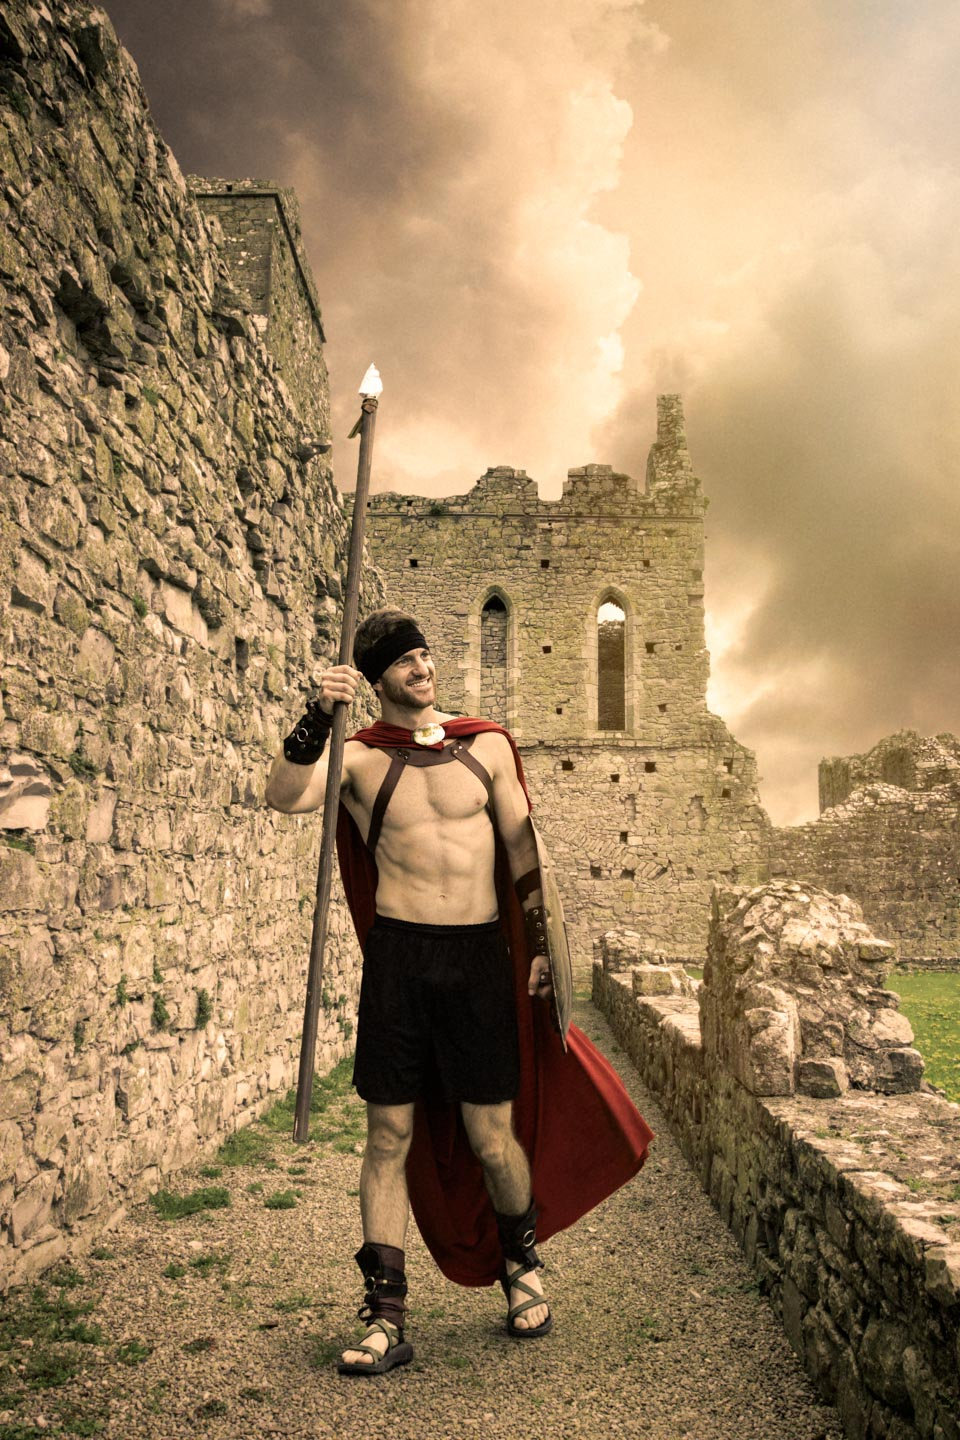 A warrior from 300's Sparta added in Photoshop to an abandoned castle